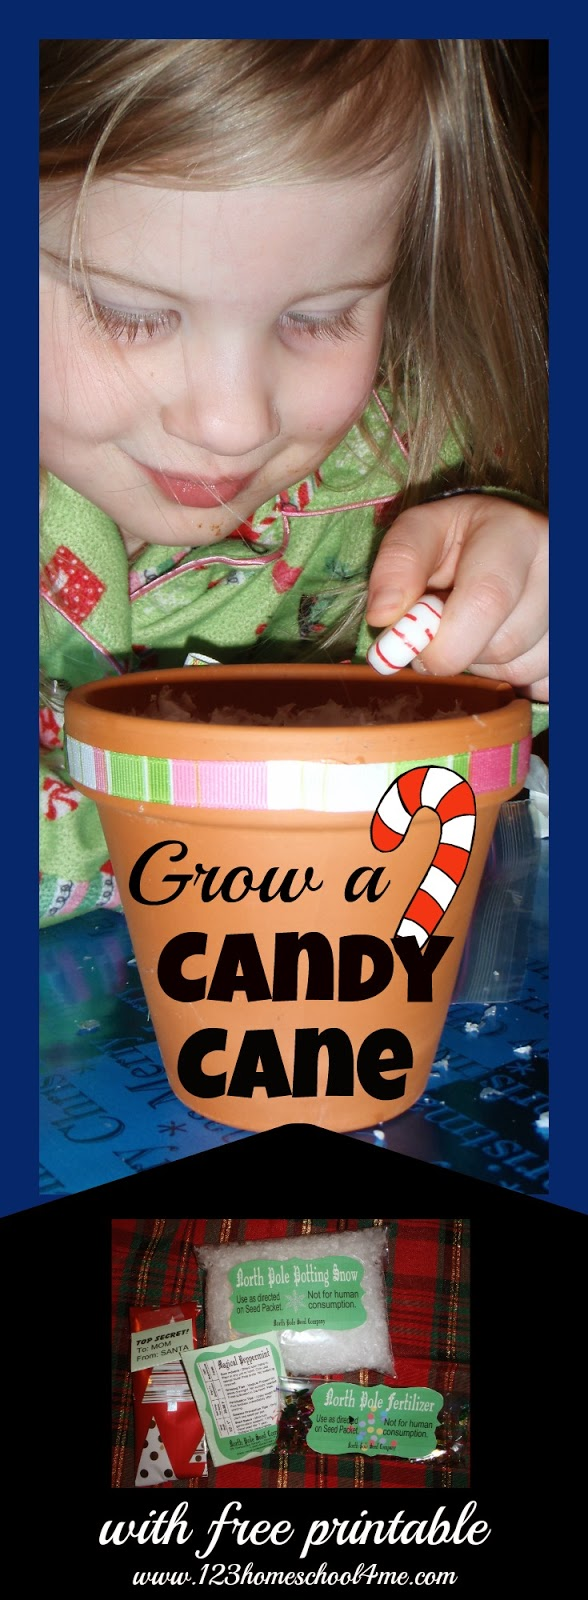 grow a candy cane activity with free printable